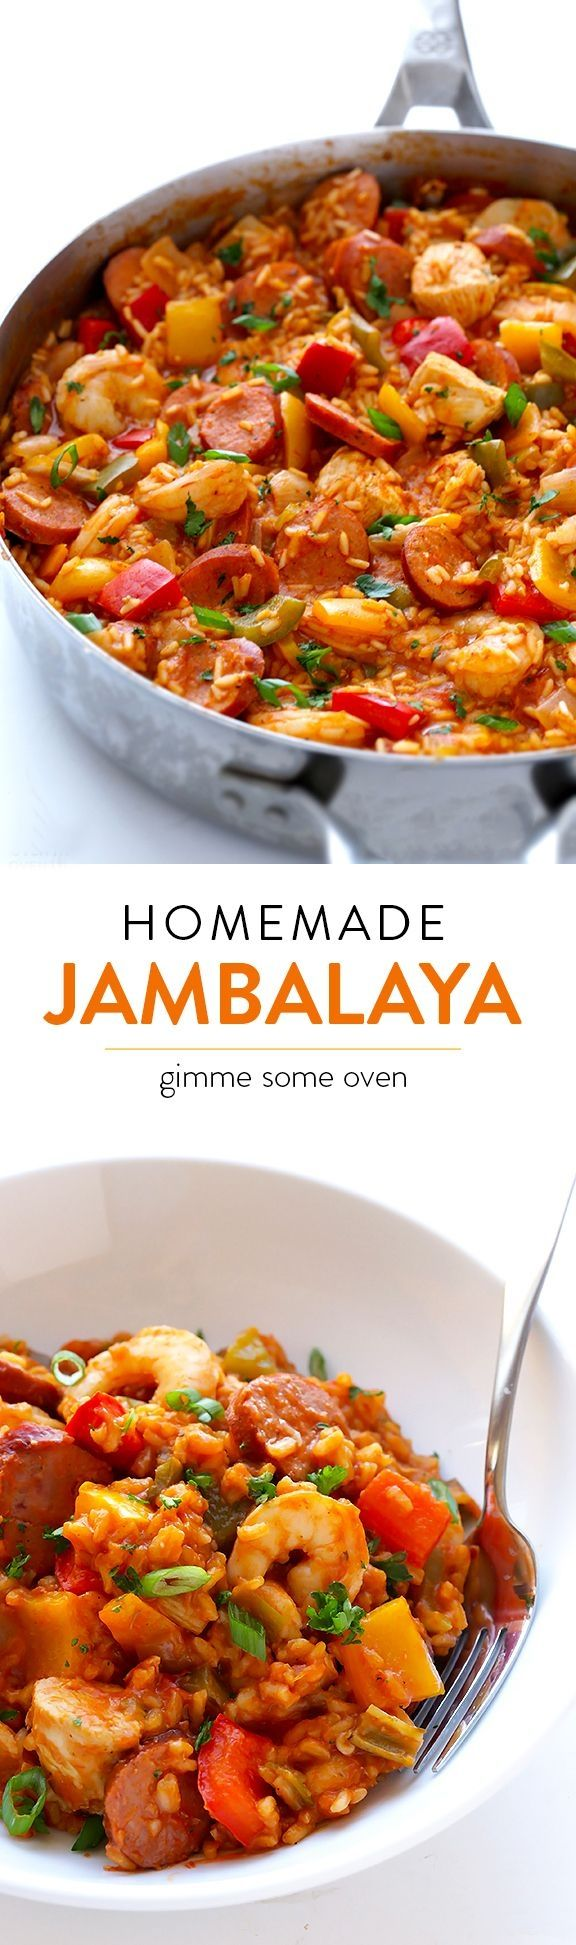 Learn how to make homemade jambalaya with this delicious (and easy!) recipe   gimmesomeoven.com by rtatamo